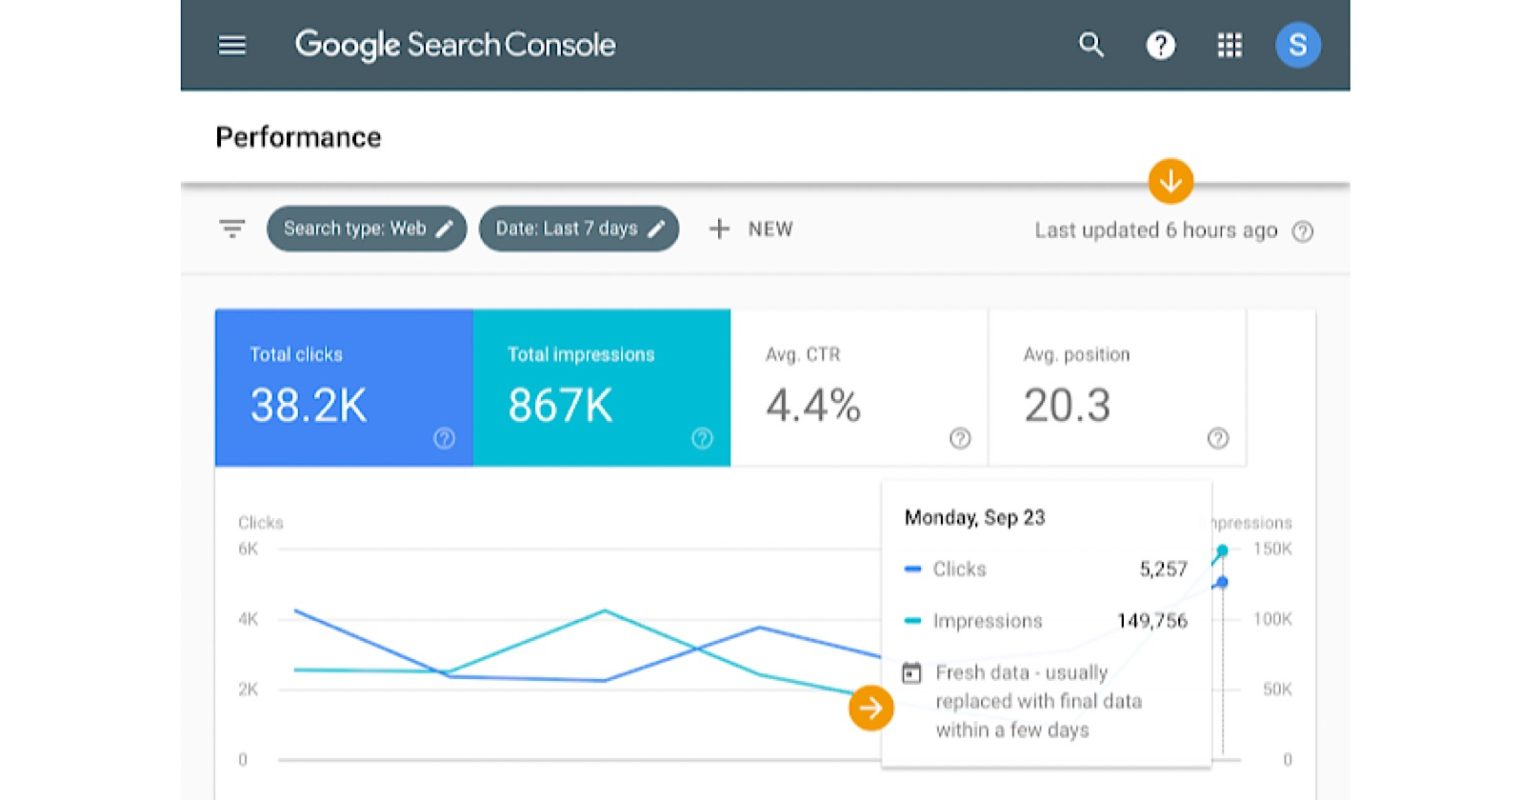 Google Search Console Can Now Report on Same-Day Data